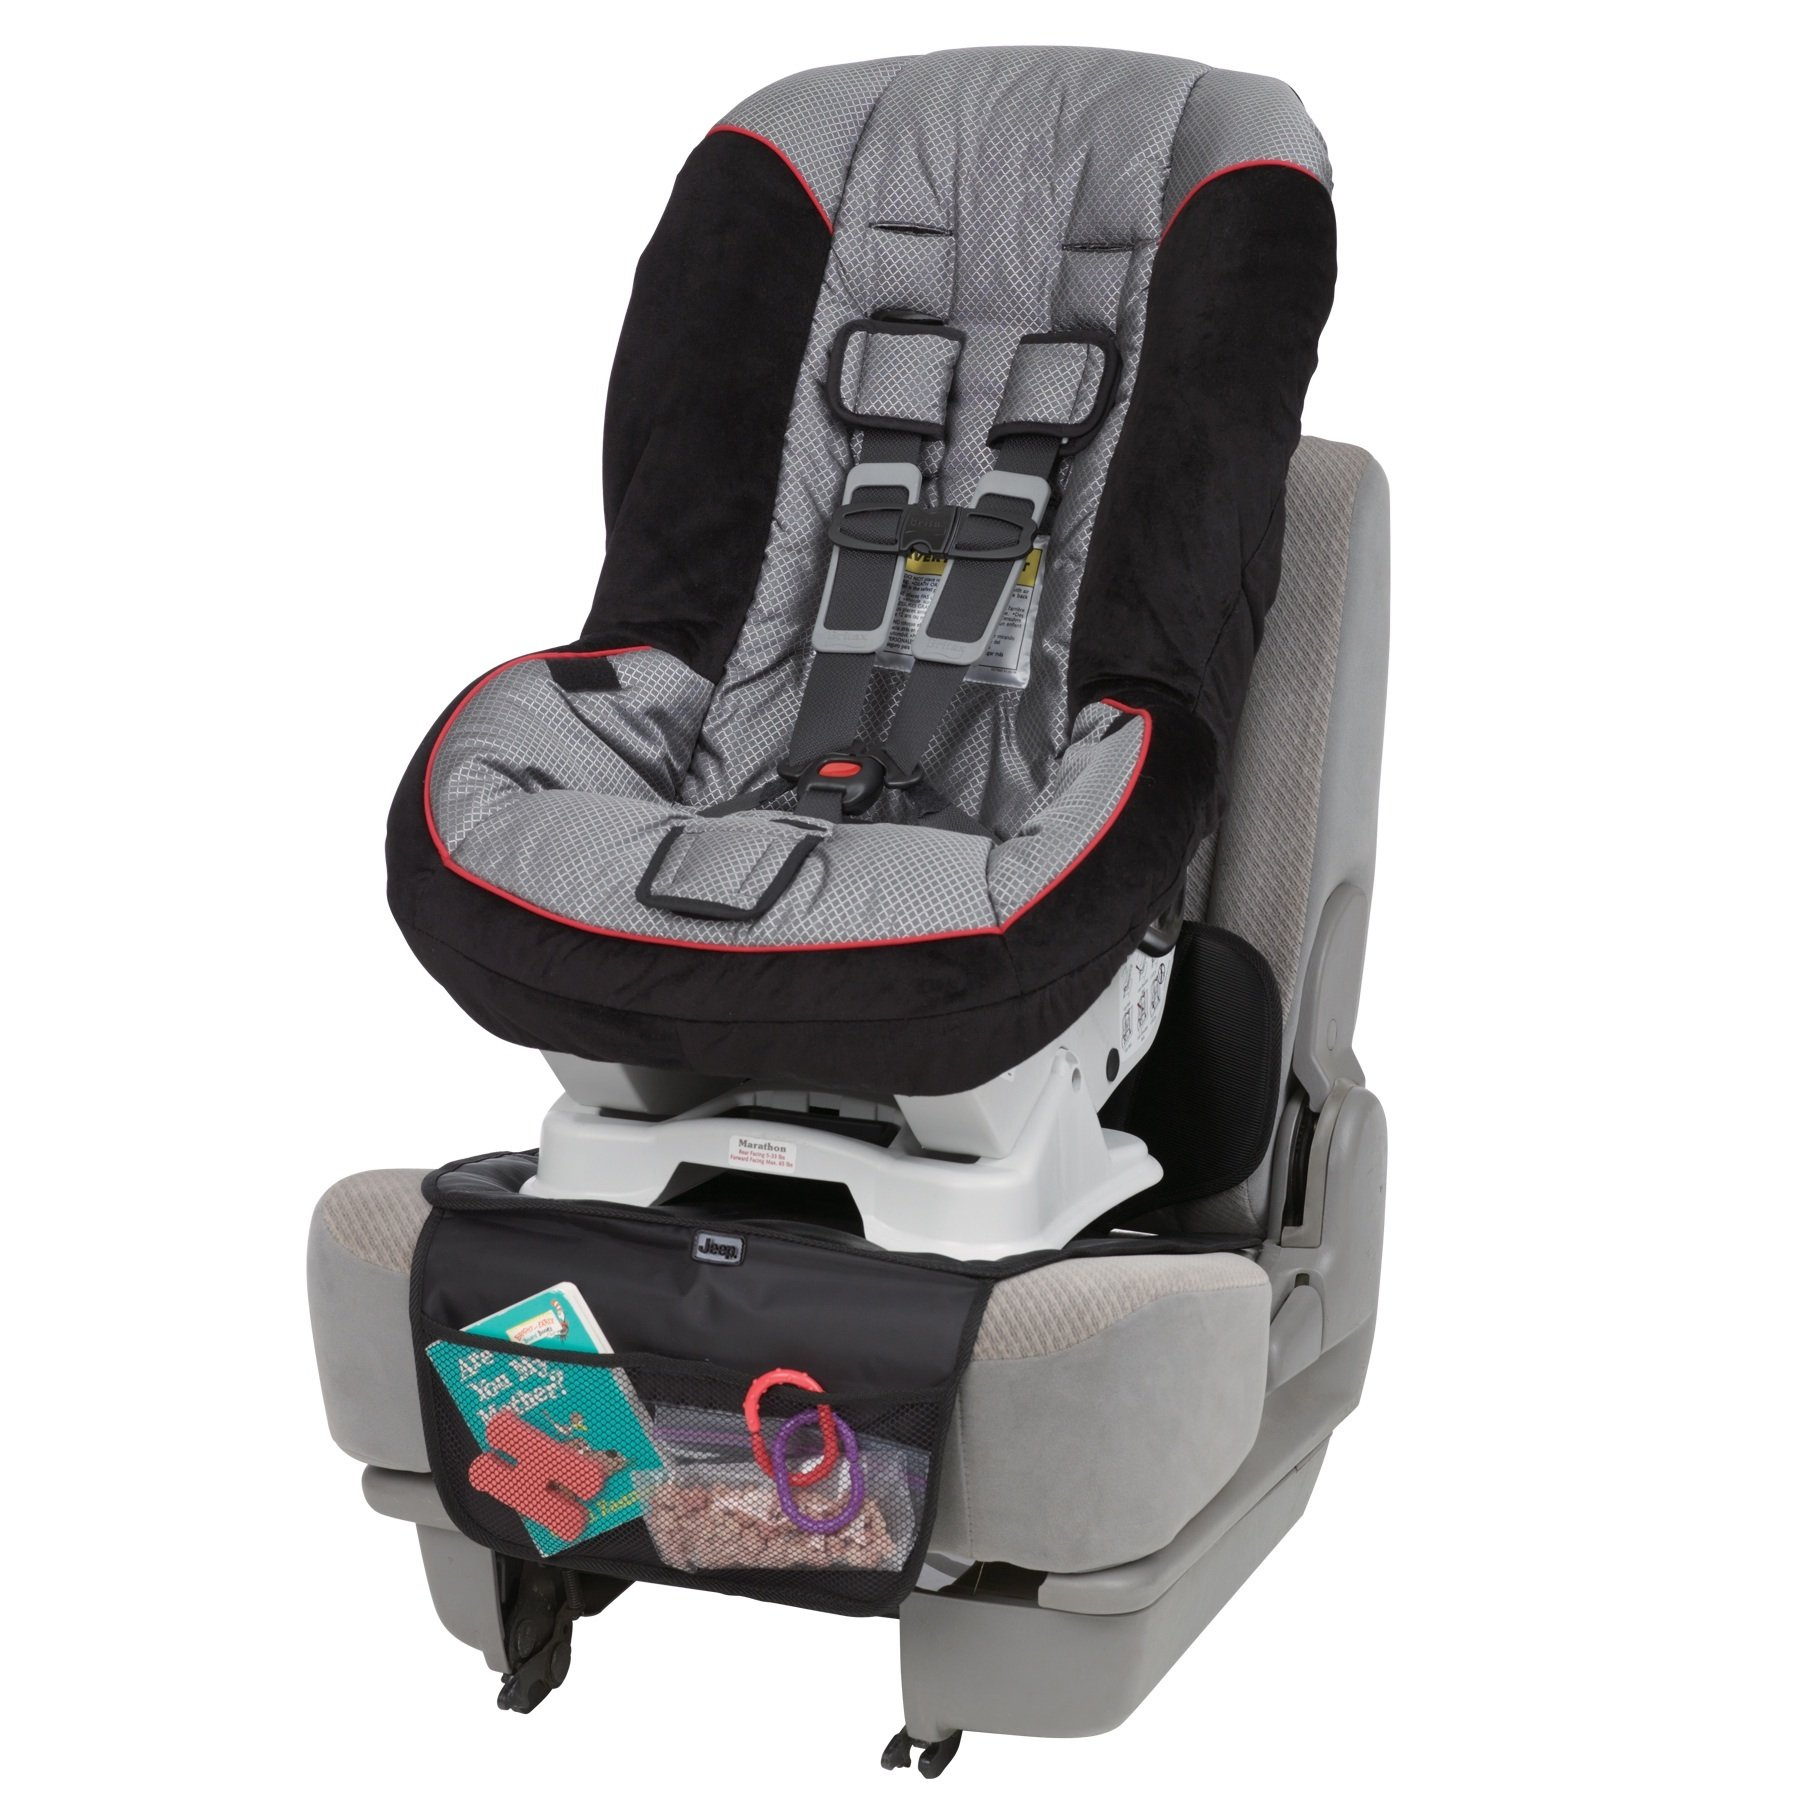 Jeep Car Seat Protector, Black by Jeep